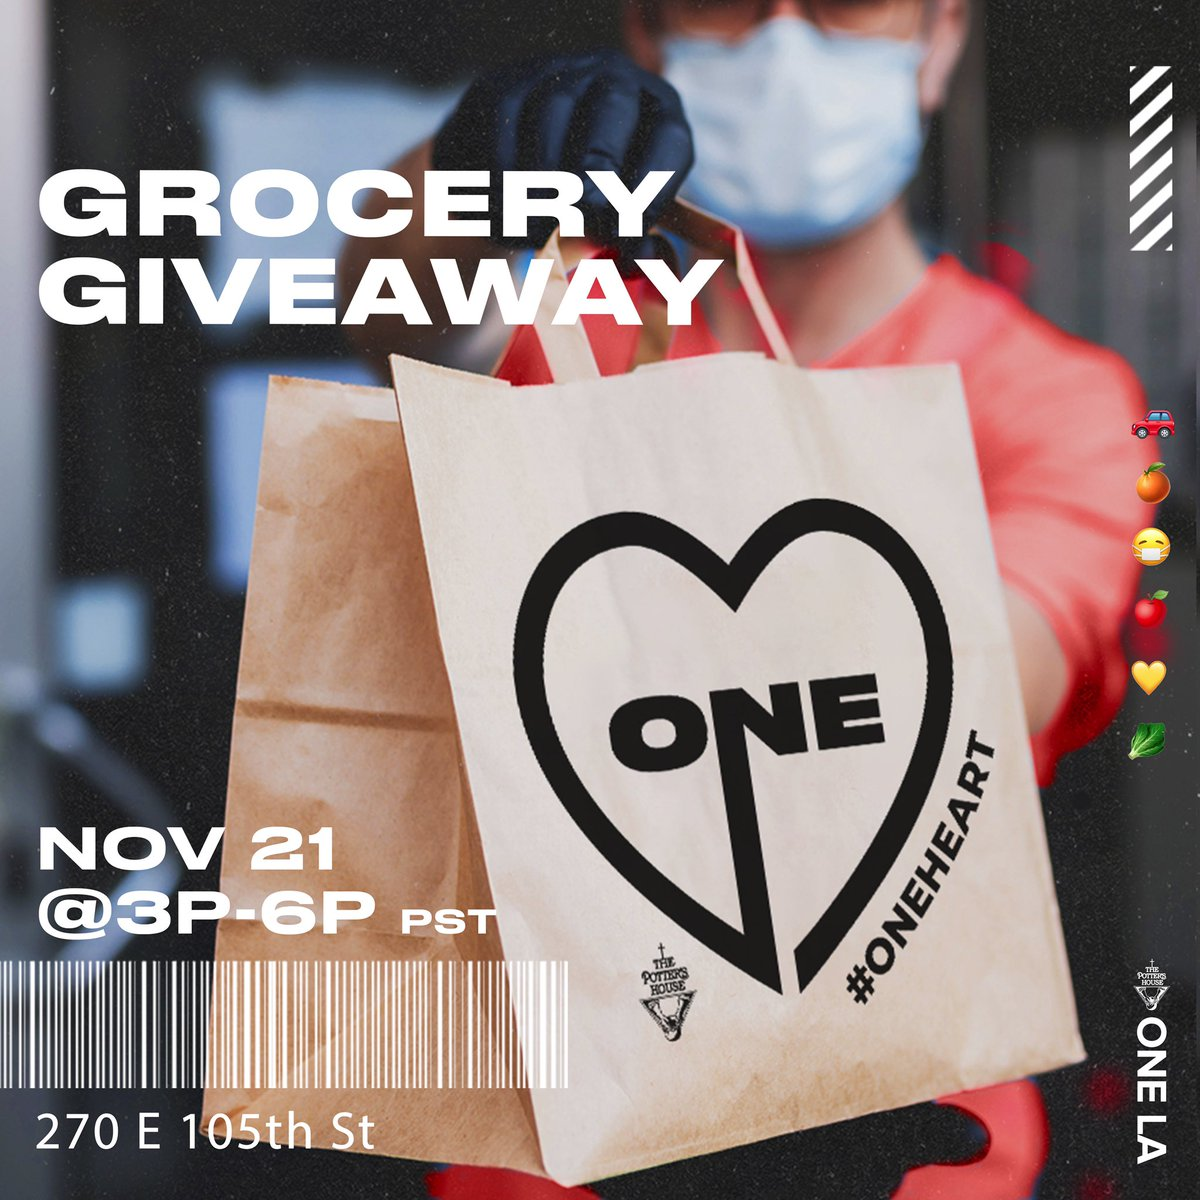 As OneHOUSE⛪️, OneFAMILY🤝 and with  OneHEART💛, we're serving our local community with FREE fresh produce this Sat, Nov 21st @ 3PM - 6PM Come to 270 E 105th St, LA, CA 90003 to grab your groceries while supplies last. Social distancing measures & mask wearing will be practiced.